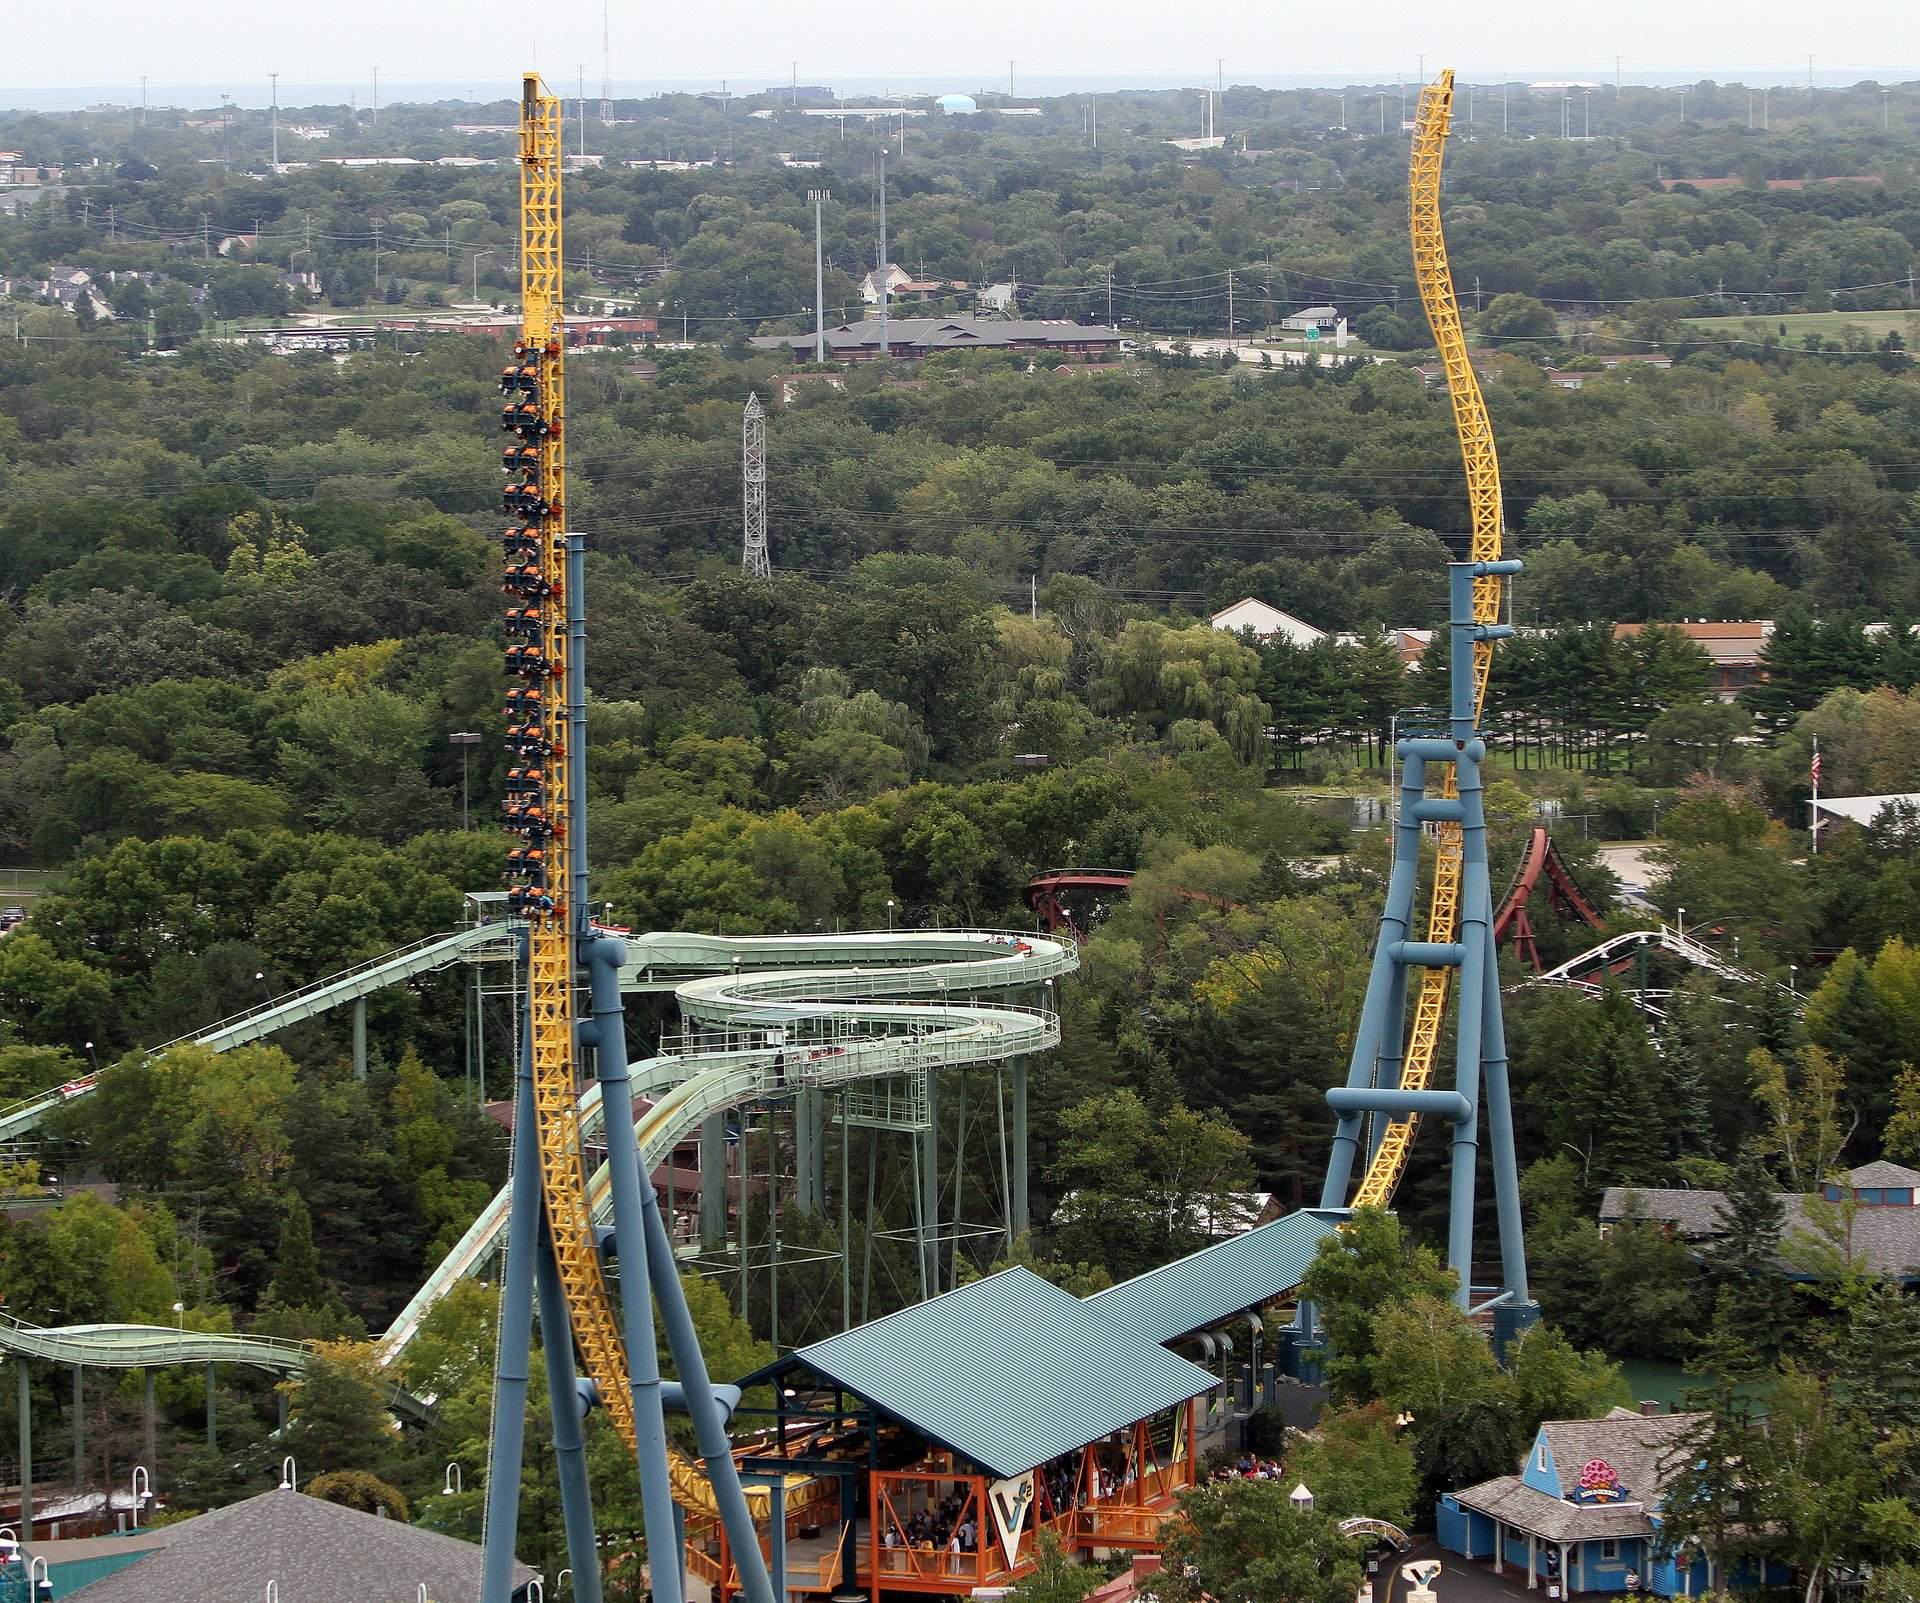 Vertical Velocity Six Flags Great America Roller Coaster Train Diagram Img 7480